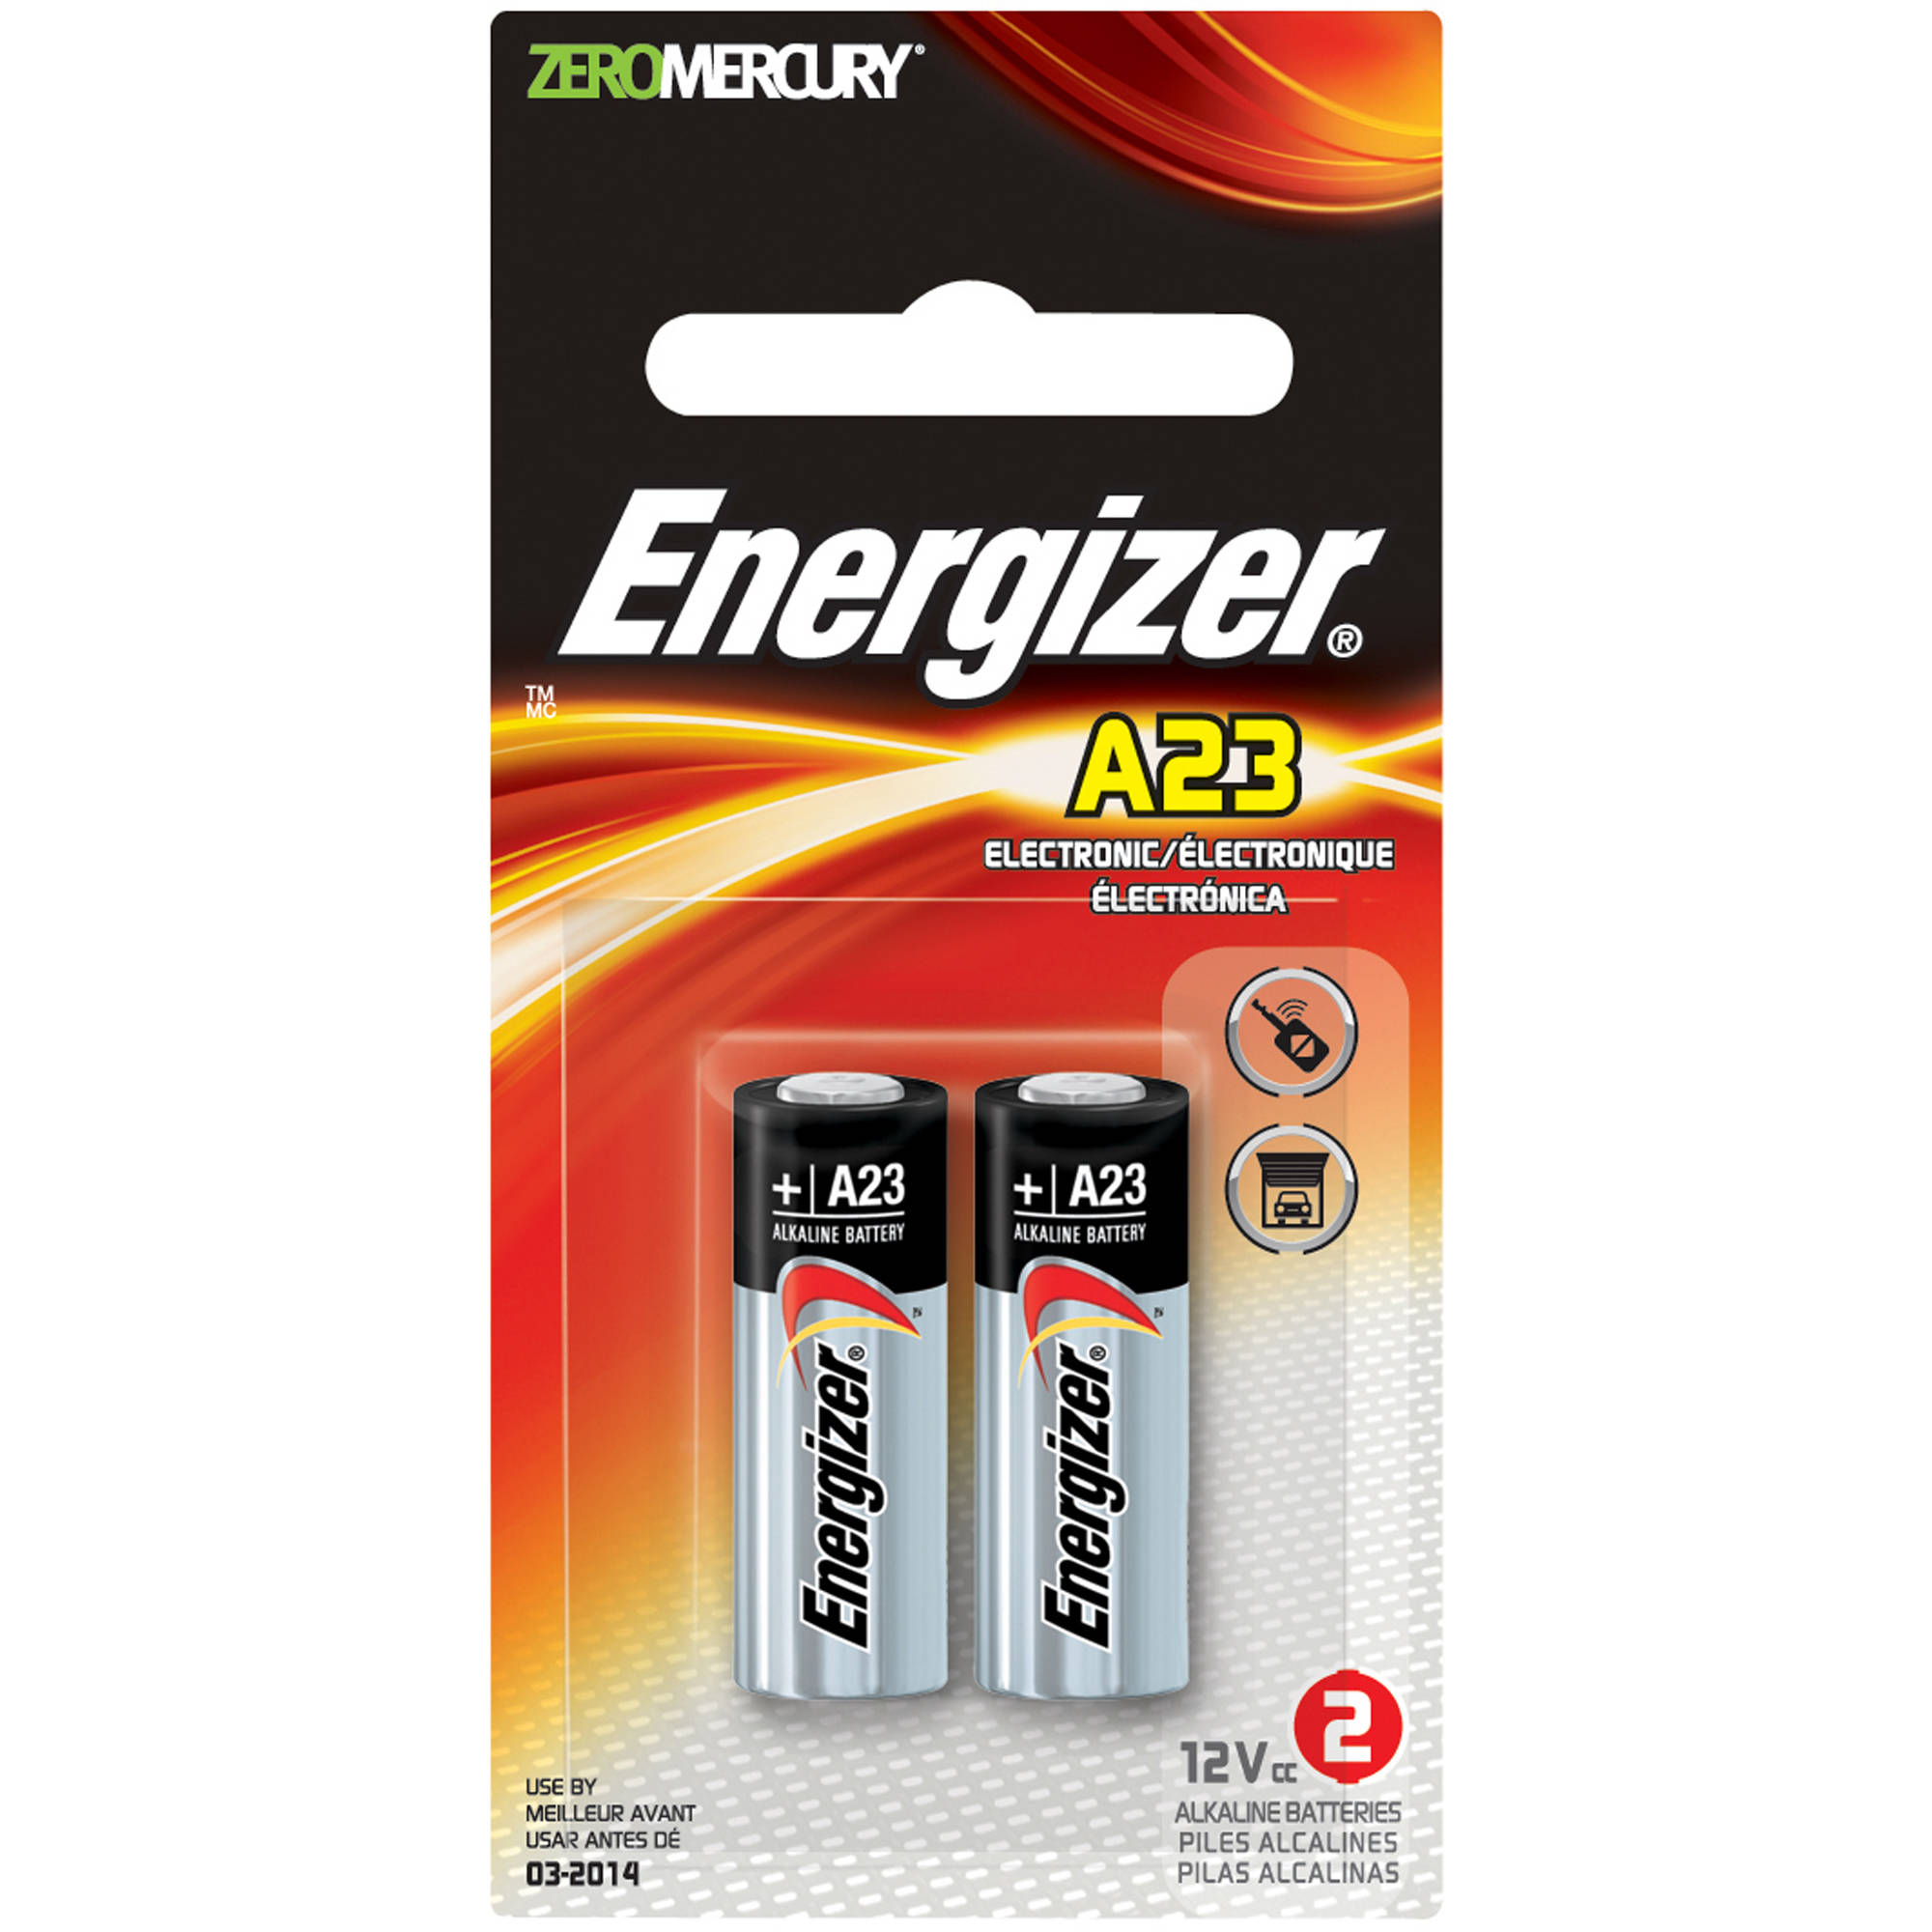 Energizer Keyless Entry 12 V Batteries, A23, 2-Pack